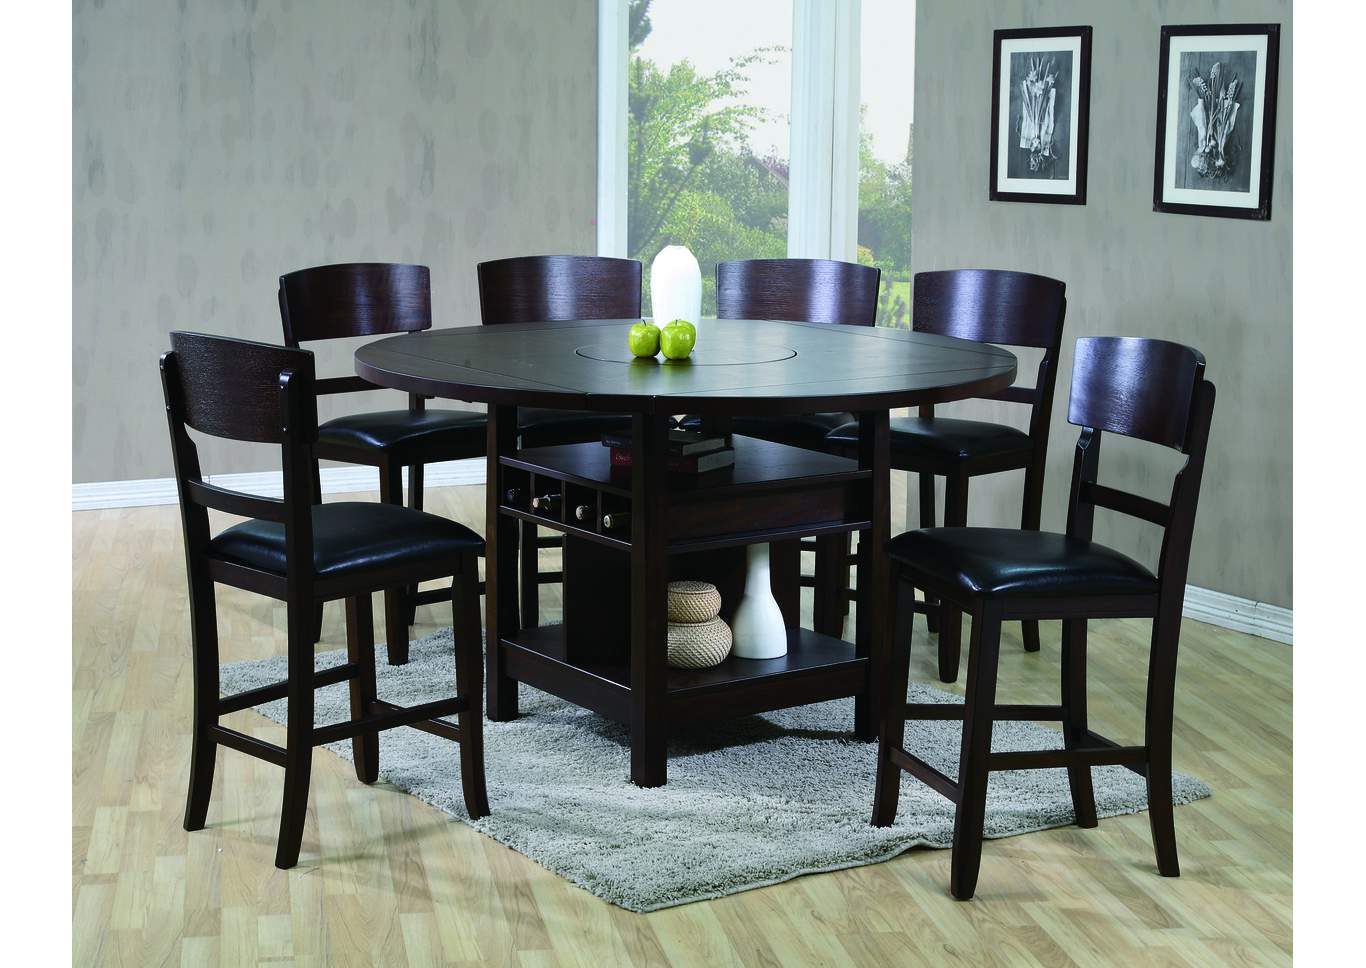 Conner Espresso Counter Height Table w/4 Side Chairs,Crown Mark